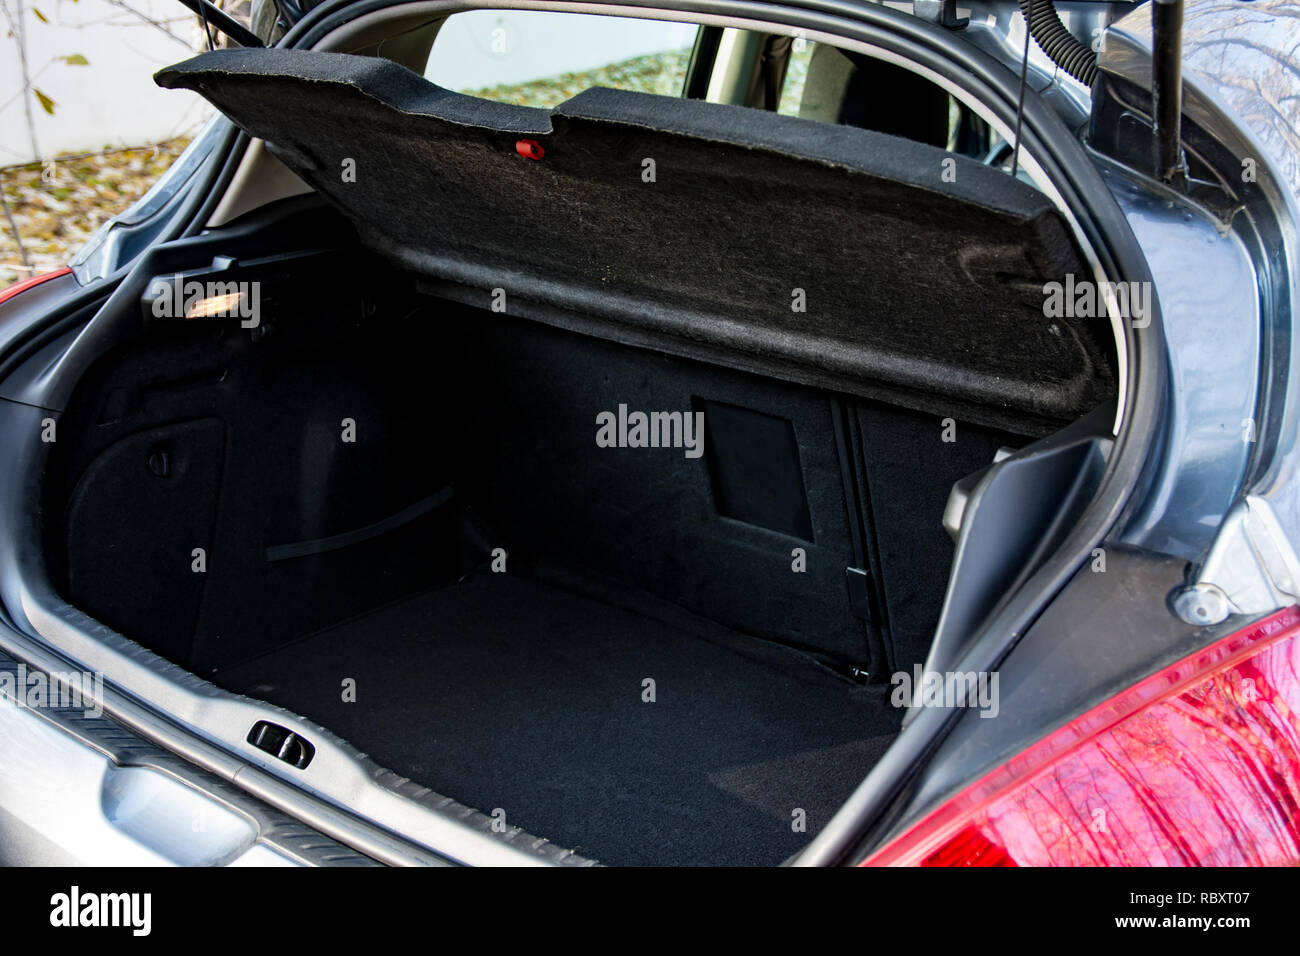 Belgrade, Serbia - 11.21.2018 / Interior images of a Peugeot 308 hdi, empty trunk. - Stock Image